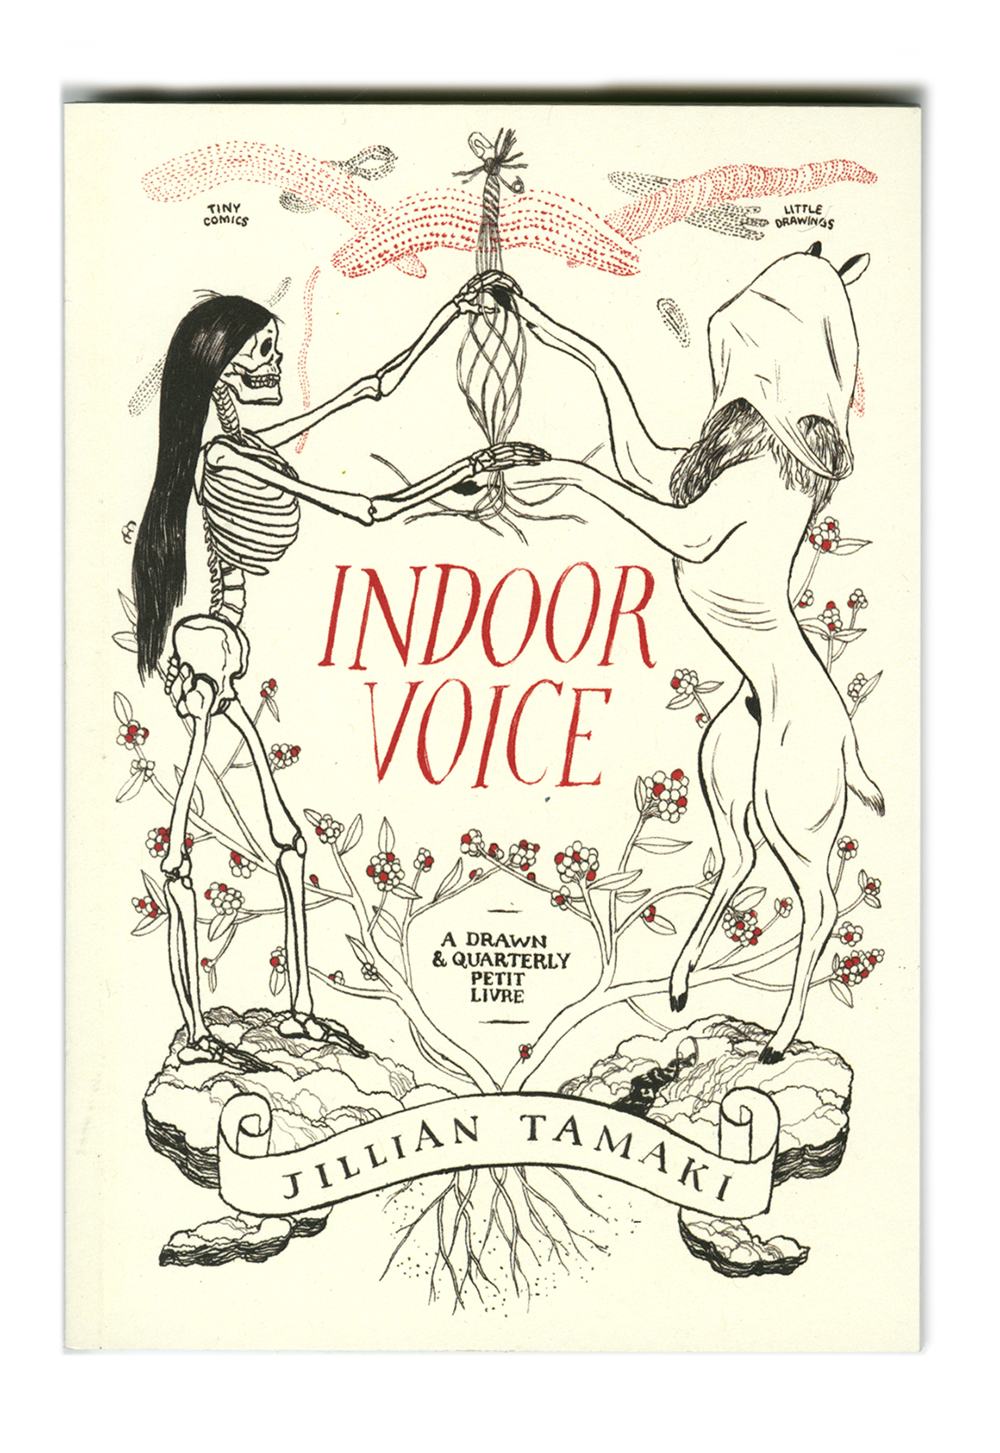 Indoor Voice - Drawn & Quarterly, 201096 pages, full colourIndoor Voice collects pen, brush, ink, watercolor, and collage experiments that show how Tamaki arrives at her illustration work, as well as more polished and personal comics work examining her relationship to her parents and their influence on her art.